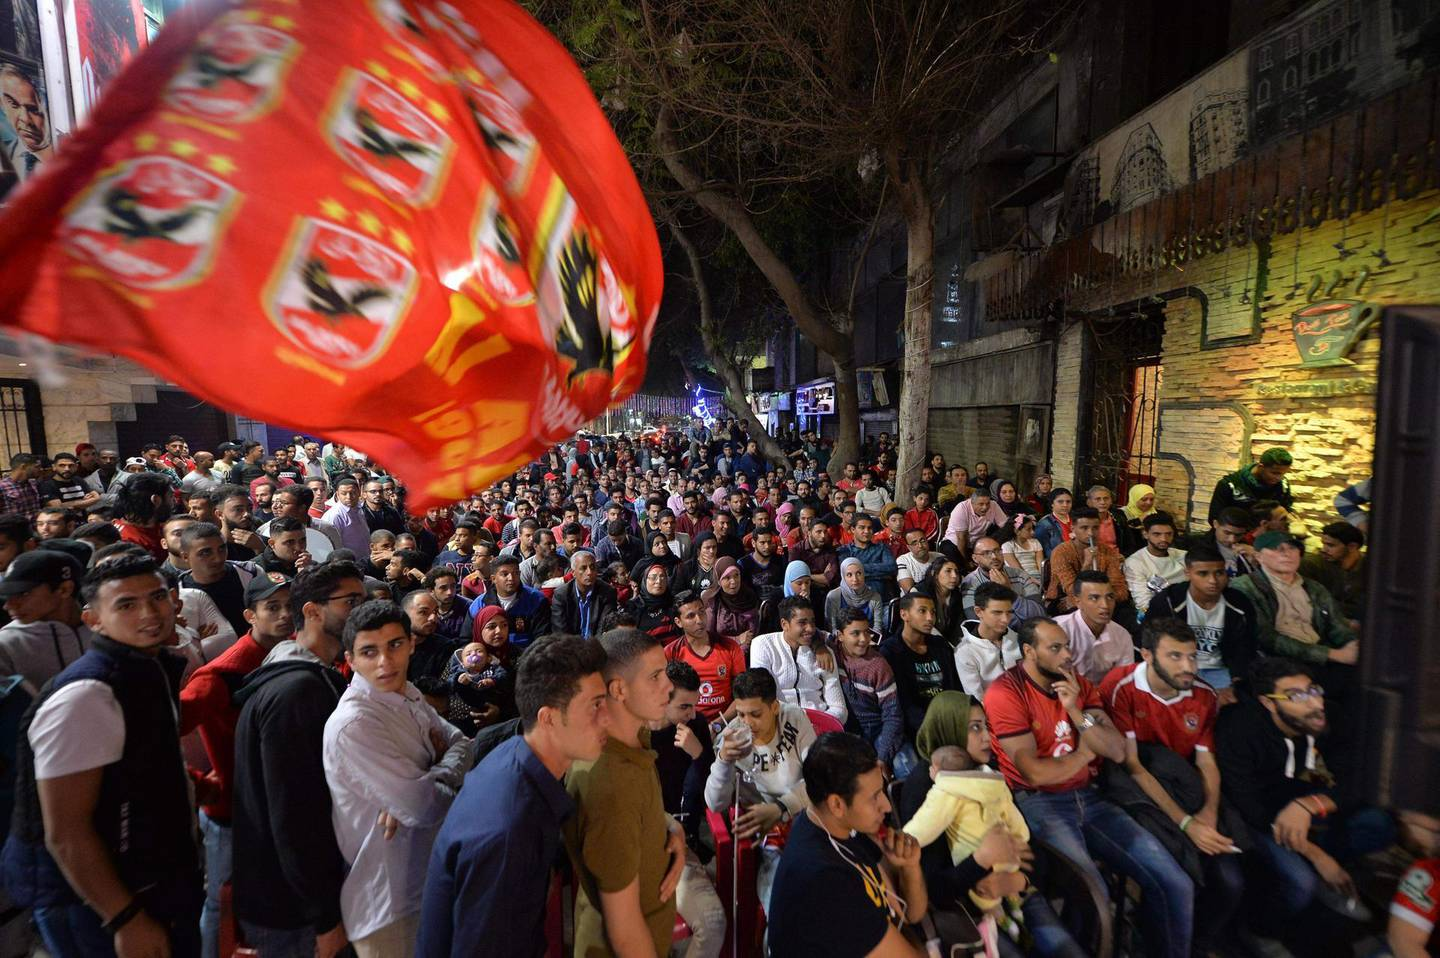 Egyptian Al-Ahly fans watch the CAF Champions League second leg final football match between Egypt's Al-Ahly and Tunisia's ES Tunis on street televisions in Cairo on November 9, 2018. / AFP / -